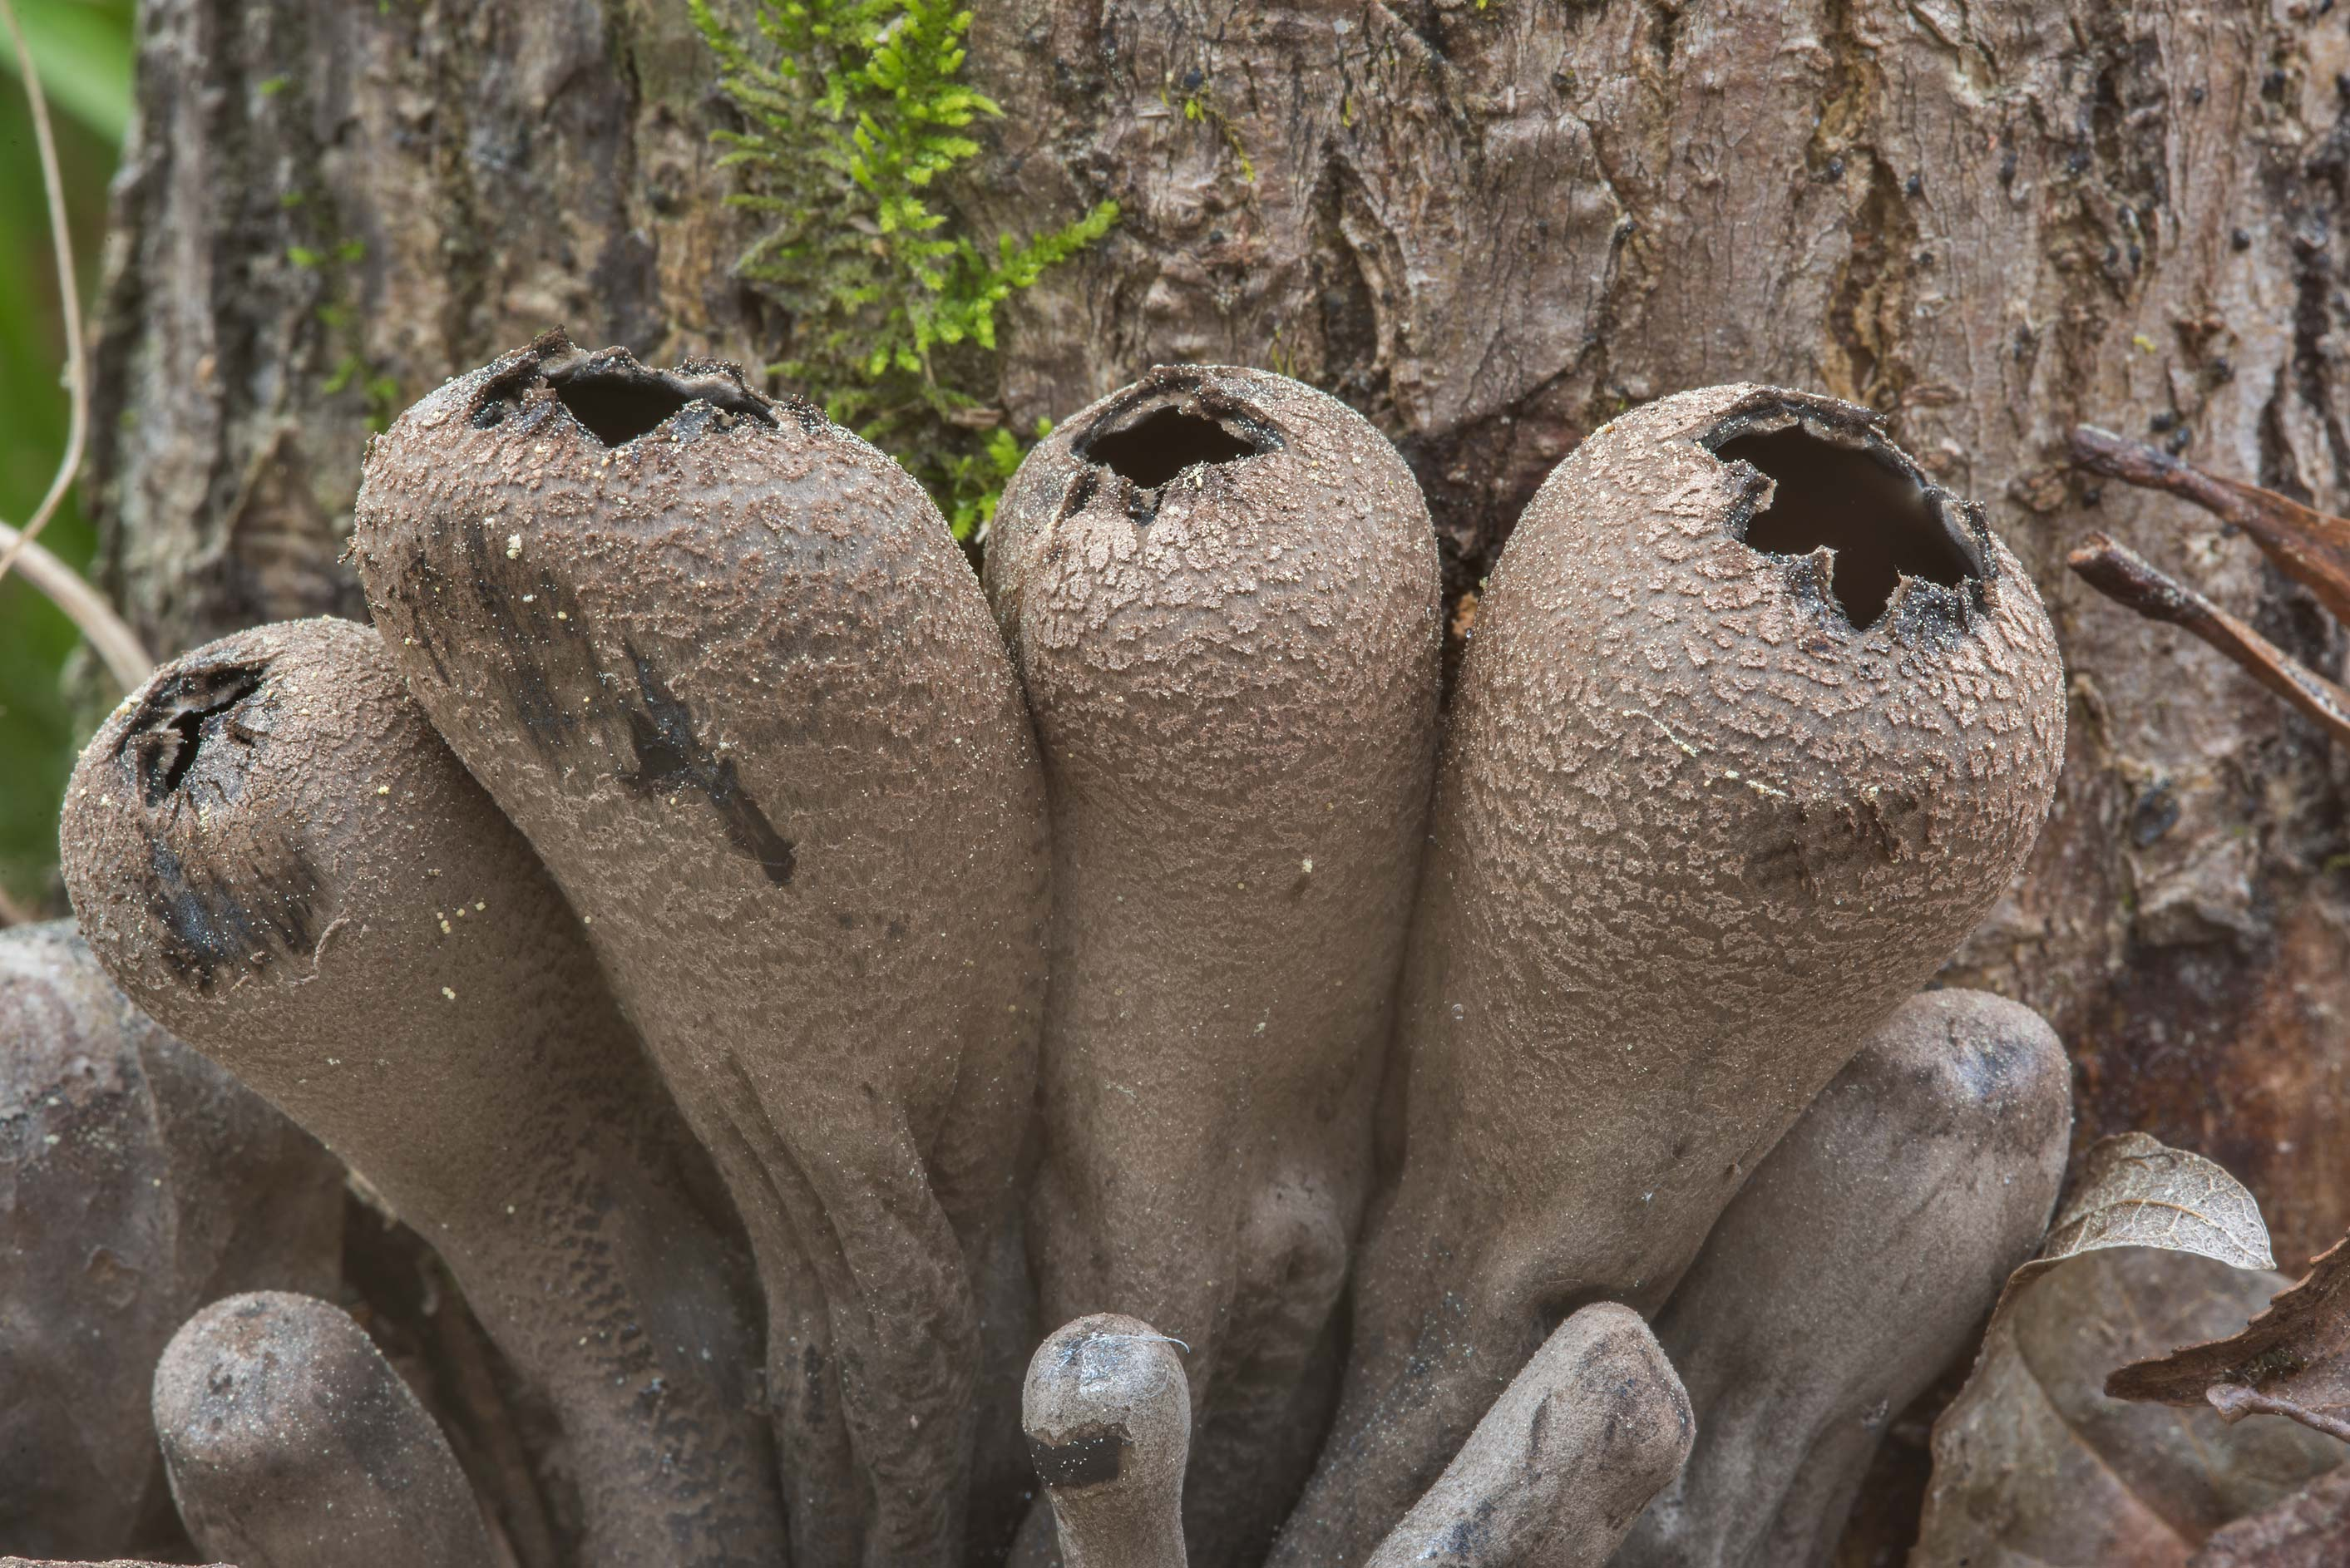 Close up of the Devil's Urn mushrooms (Urnula...Forest, near Huntsville. Texas